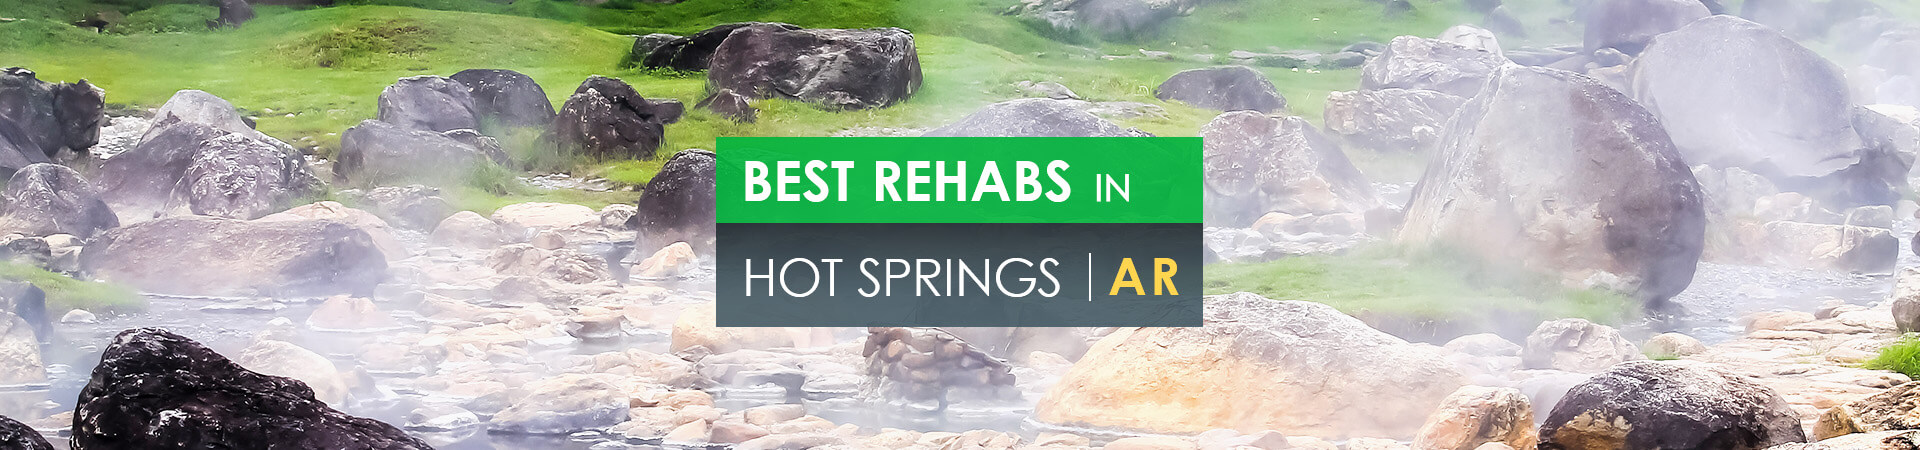 Best rehabs in Hot Springs, AR